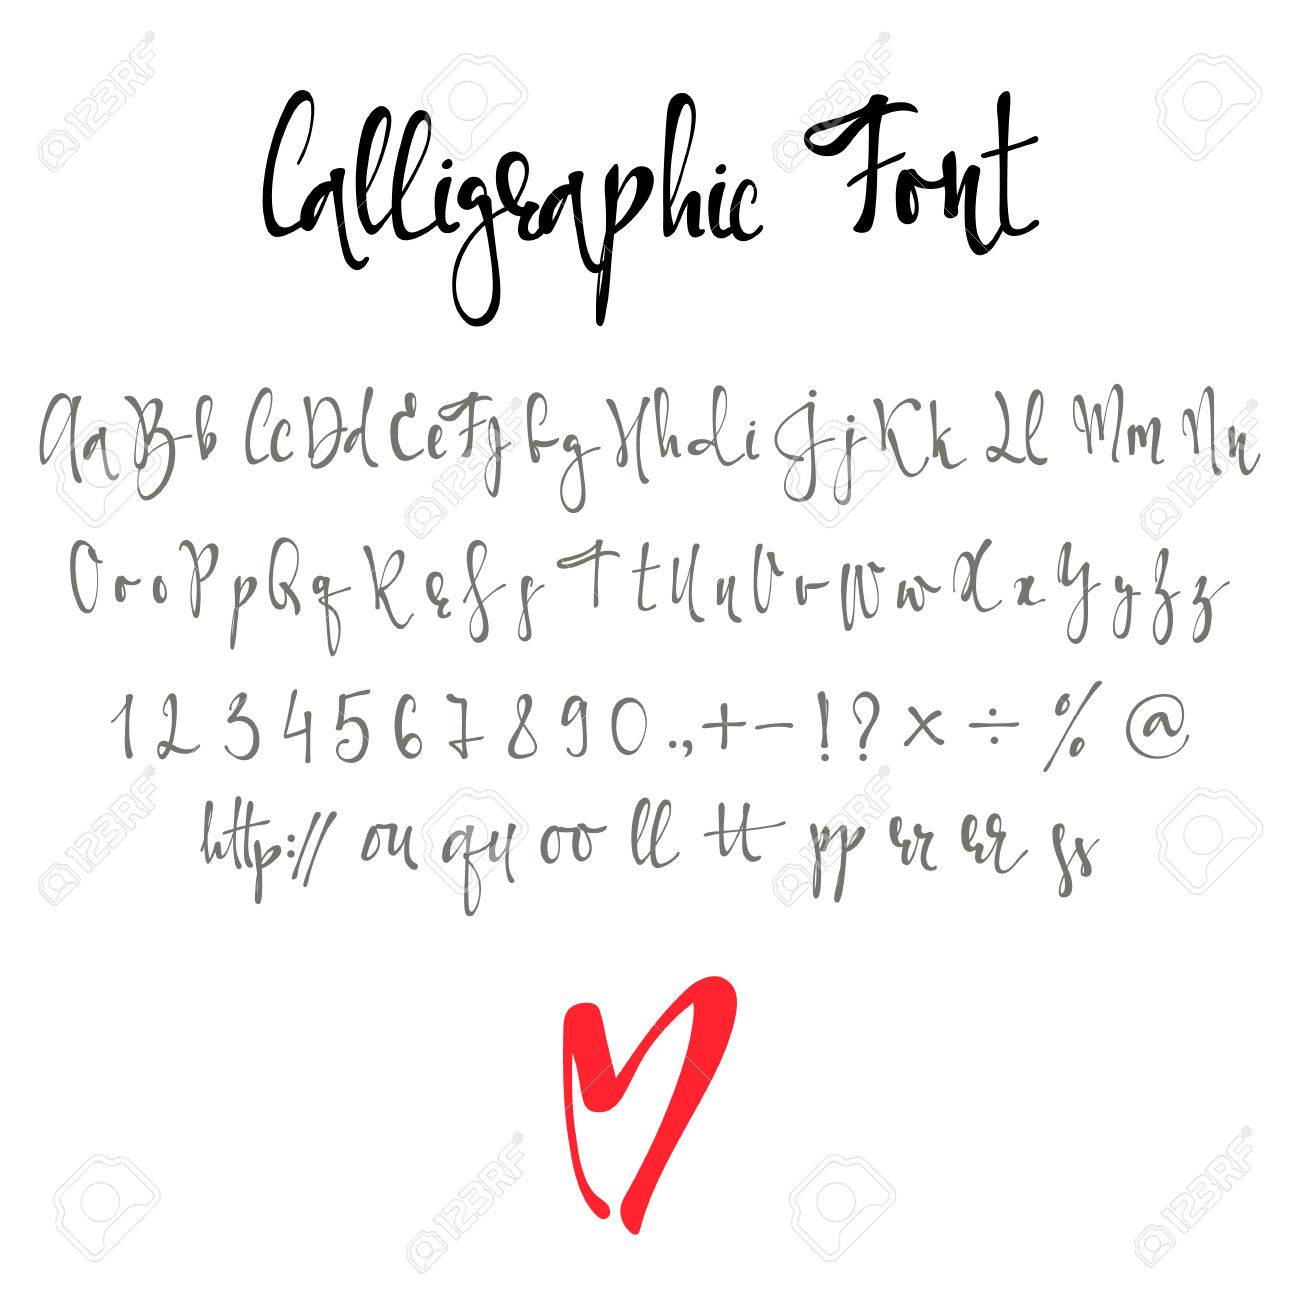 Calligraphic Font With Numbers Ampersand And Symbols Modern Alphabet Letters